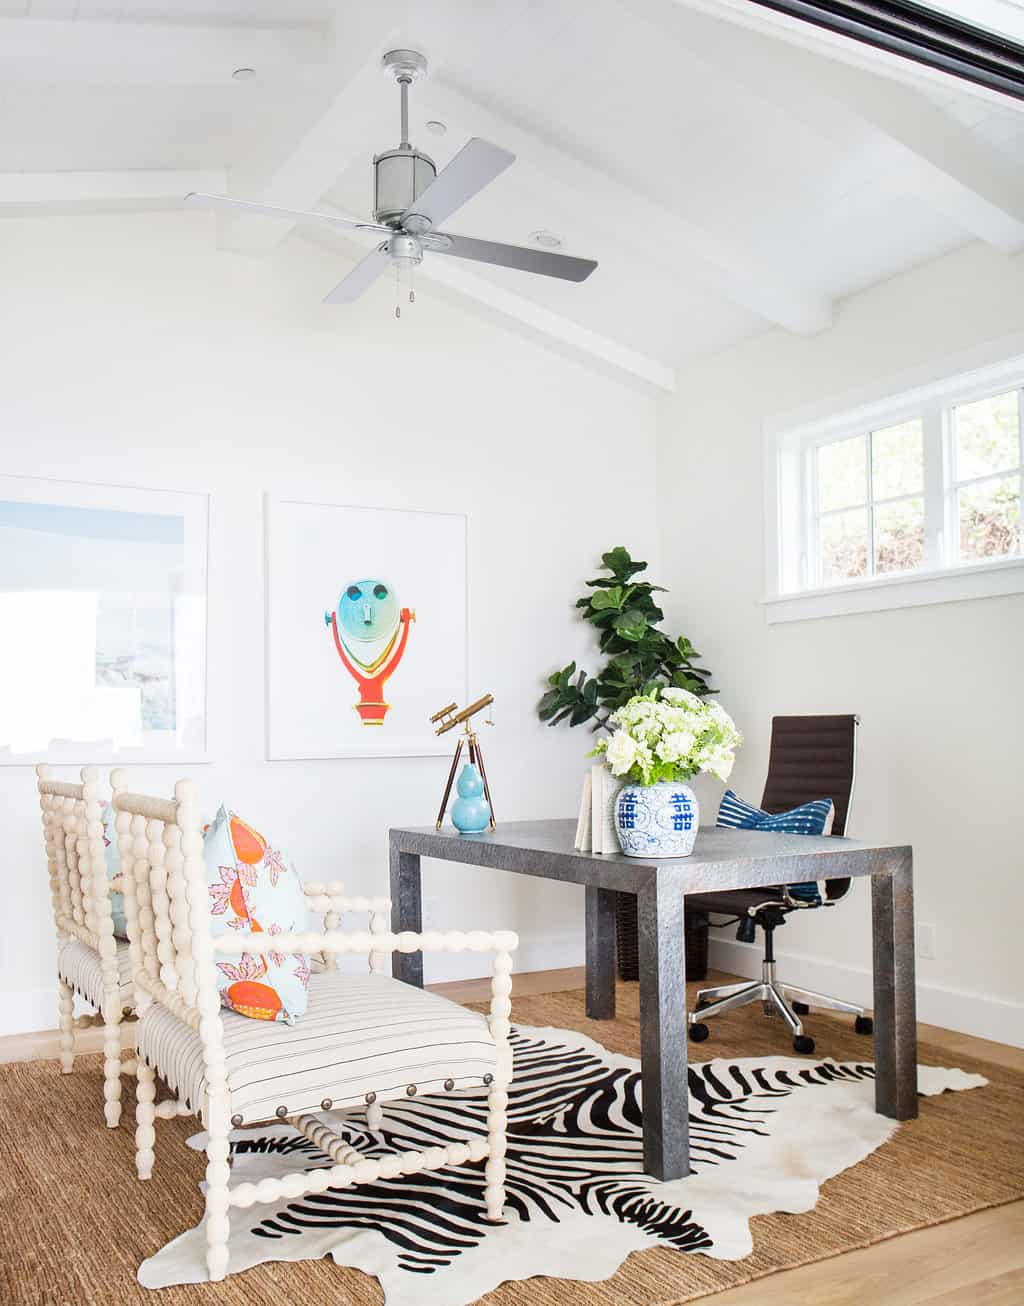 HOM-Modern-Farmhouse-With-Coastal-Flare-by-Blackband-Design-office